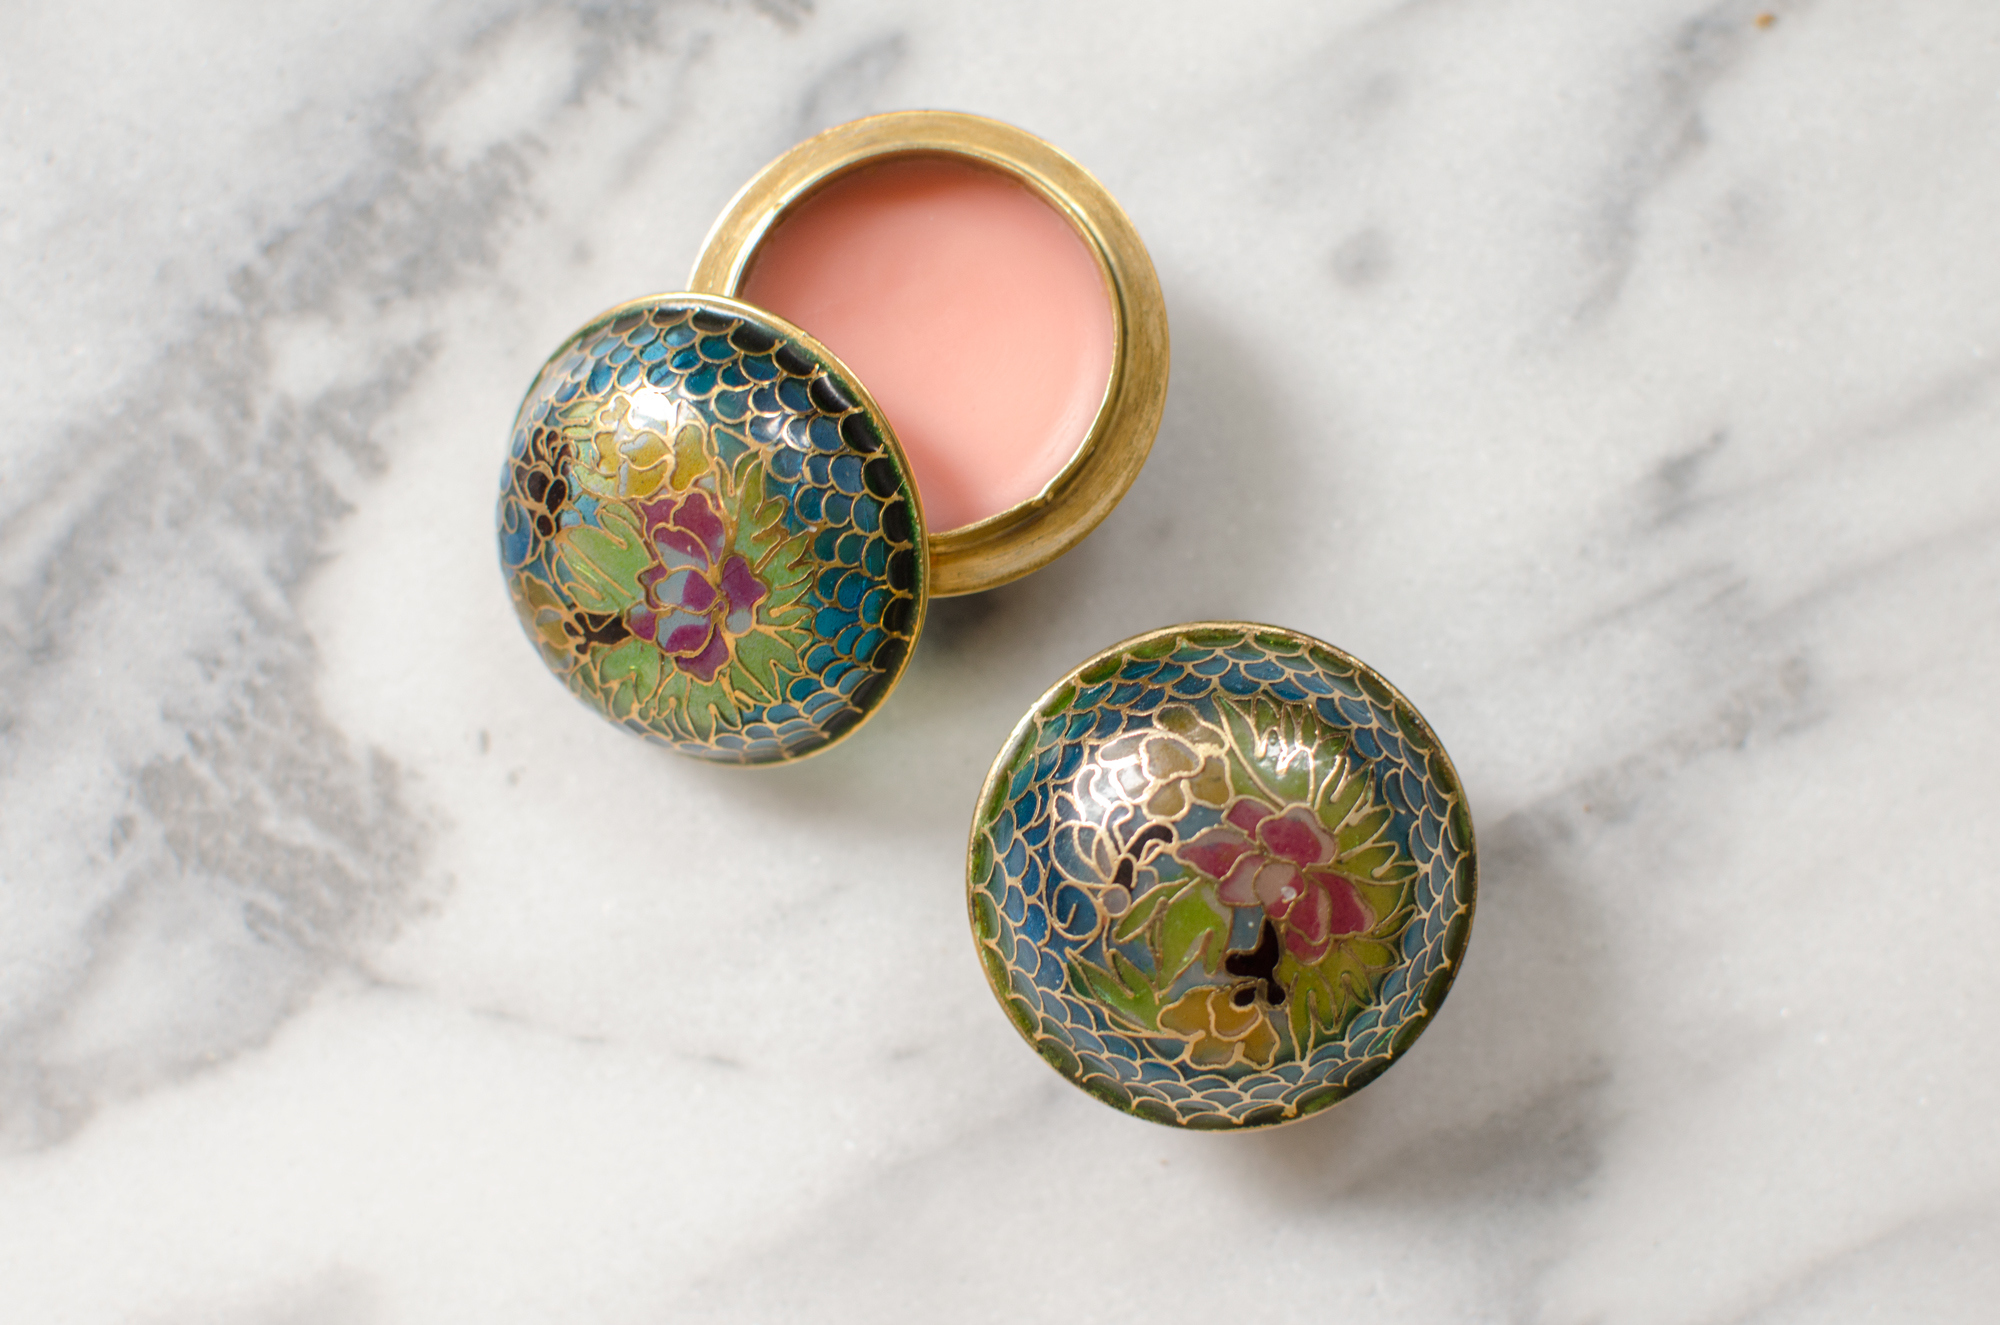 DIY Homemade Lip Balm in Vintage Pillboxes